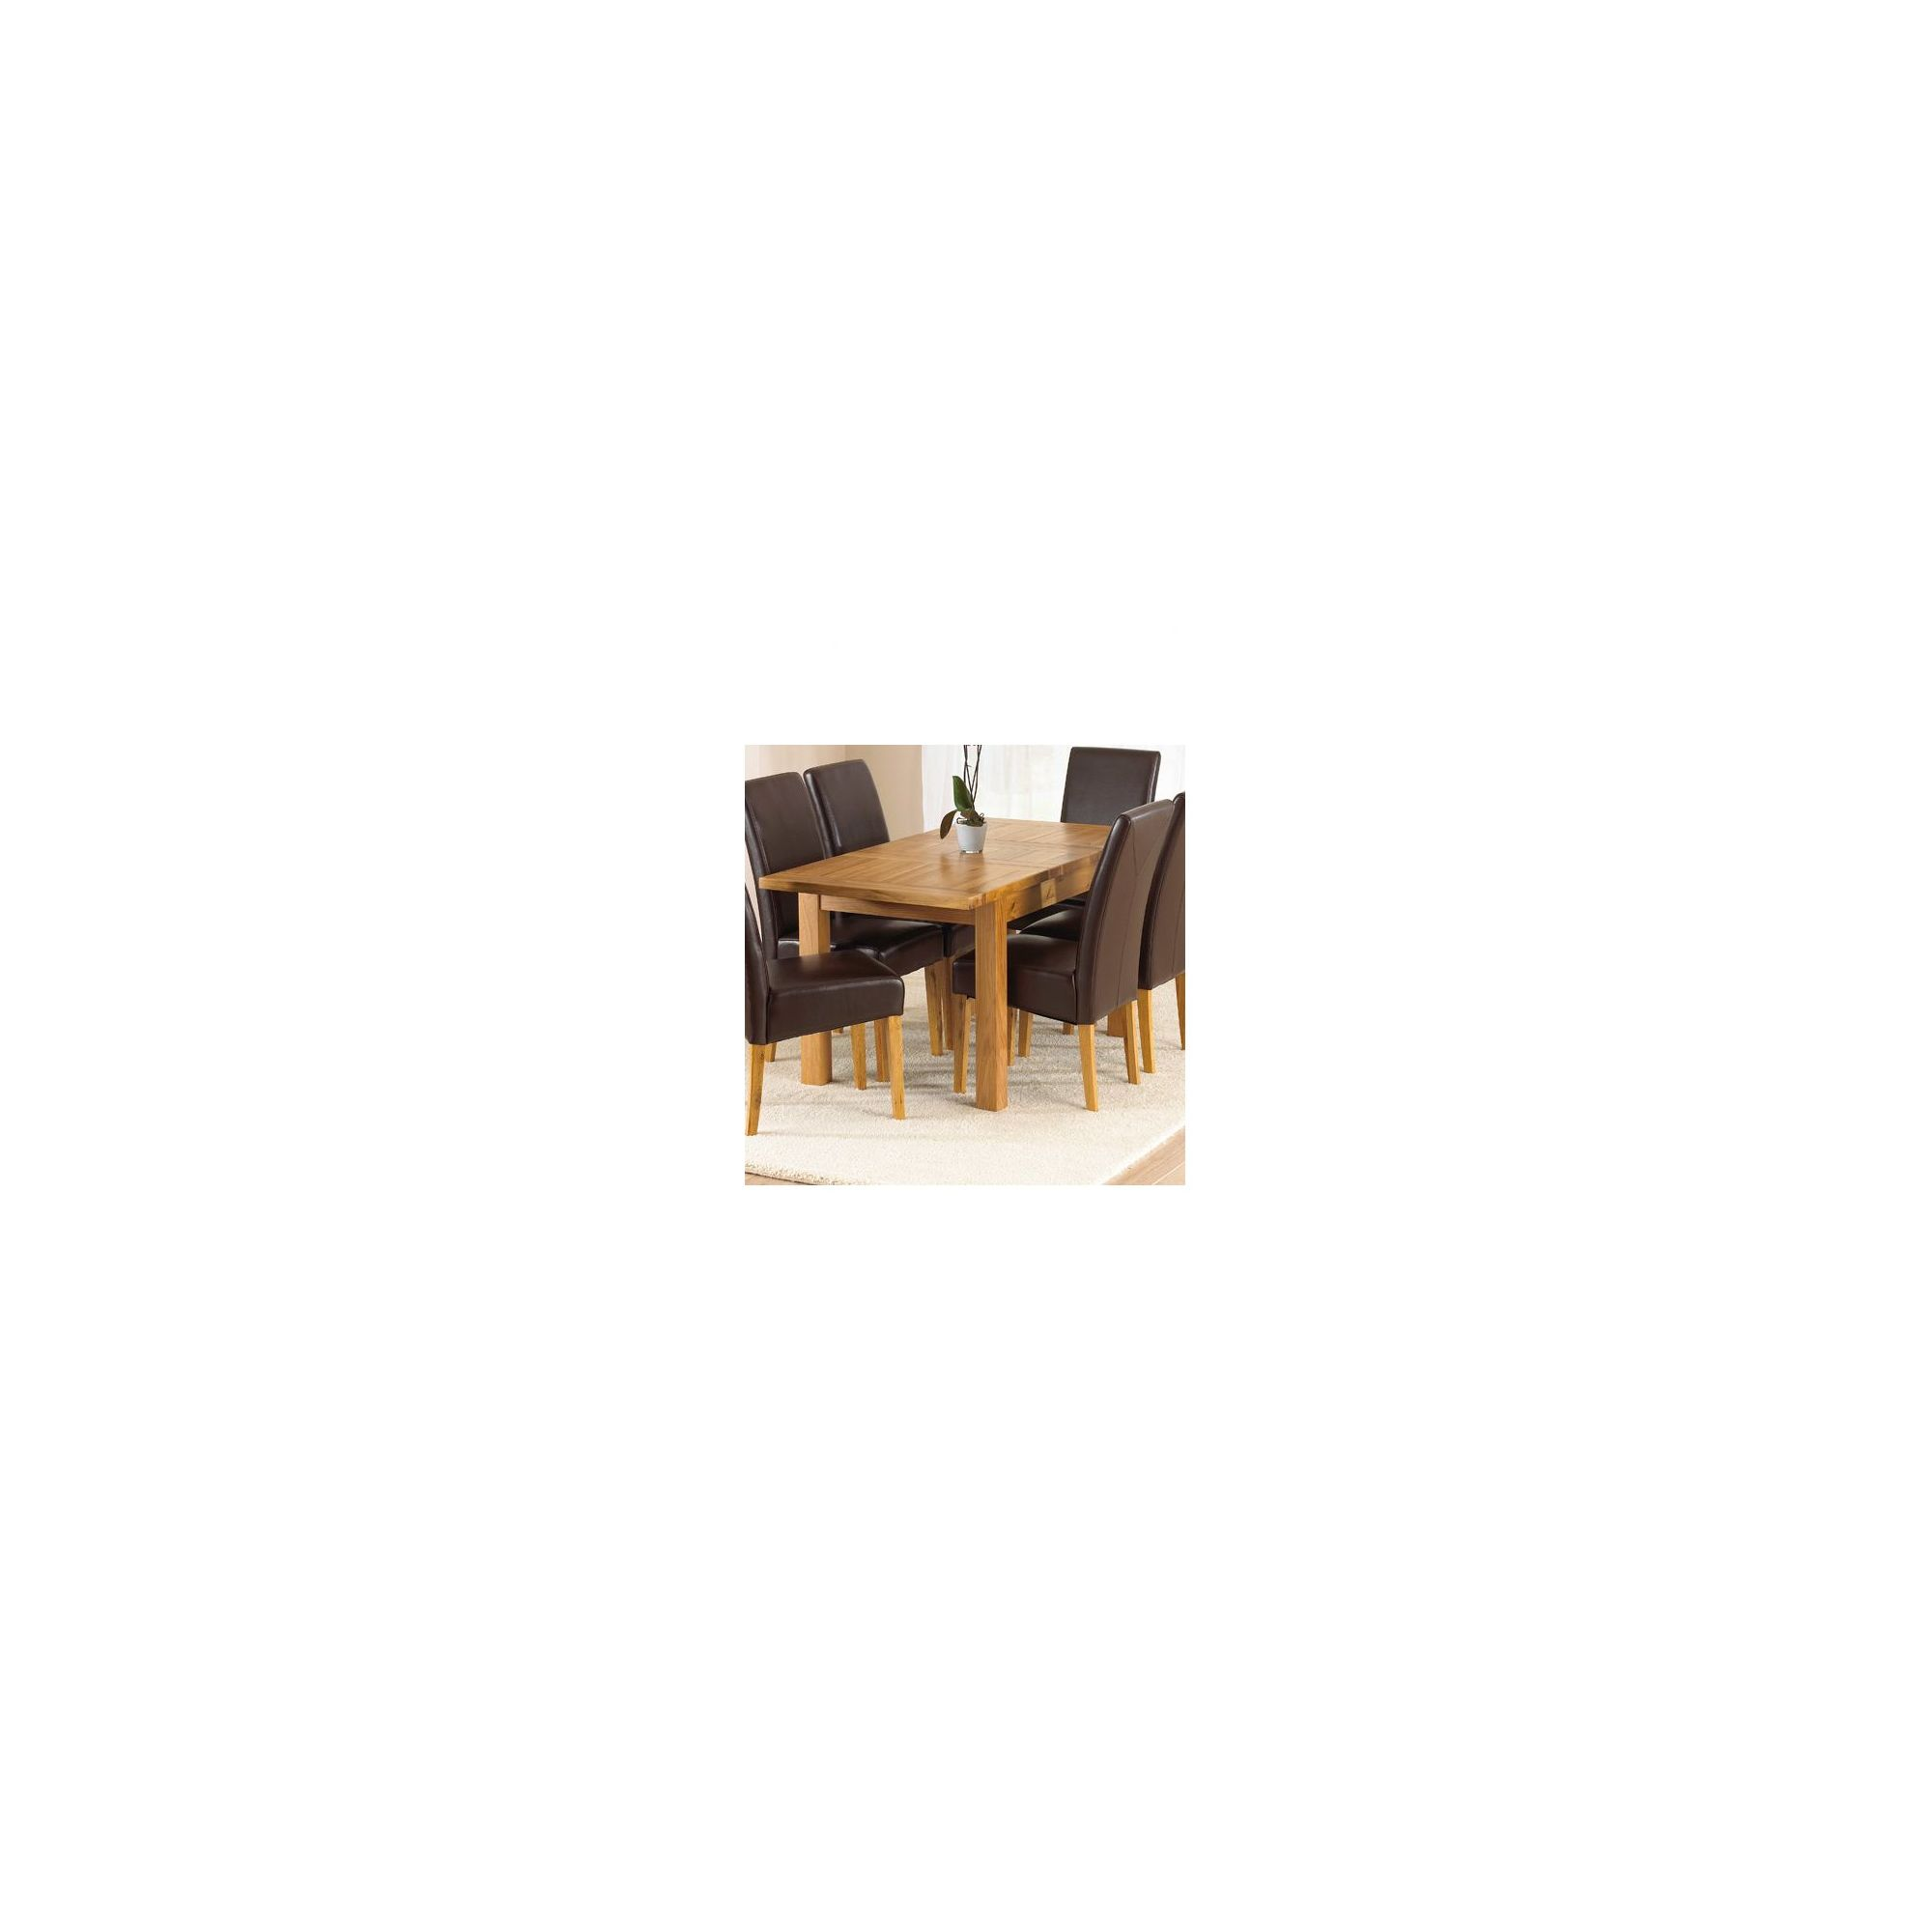 Mark Harris Furniture Rustique Classical Solid Oak Dining Table - 150 cm